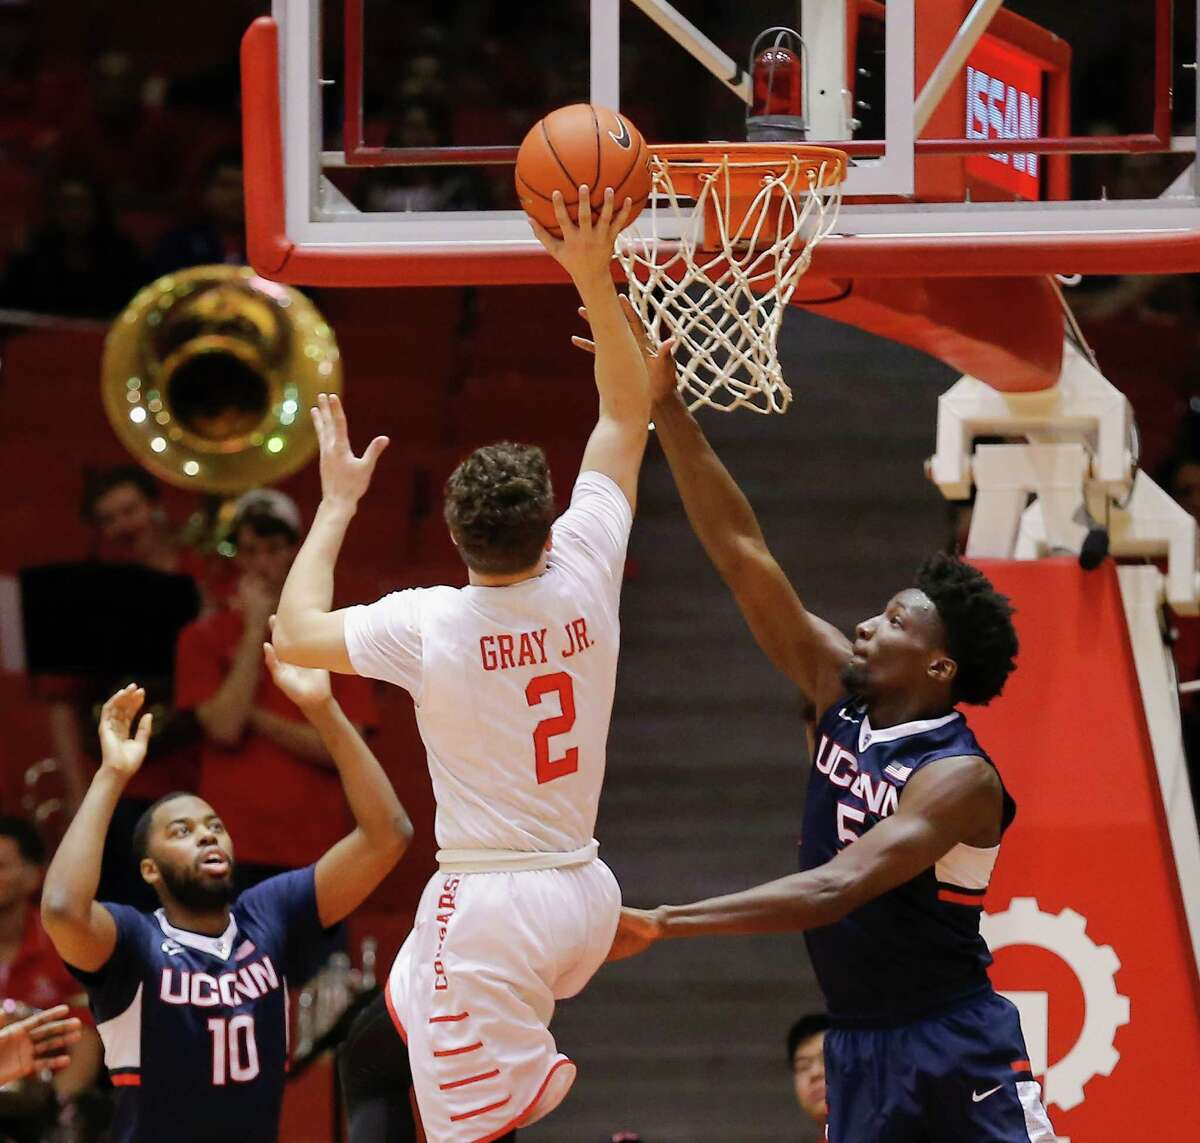 Houston guard Rob Gray Jr. (2) drives to the basket past Connecticut guard Daniel Hamilton (5) as guard Sam Cassell Jr. (10) looks on during the first half of an NCAA college basketball game Sunday, Jan. 17, 2016, in Houston. (AP Photo/Bob Levey)